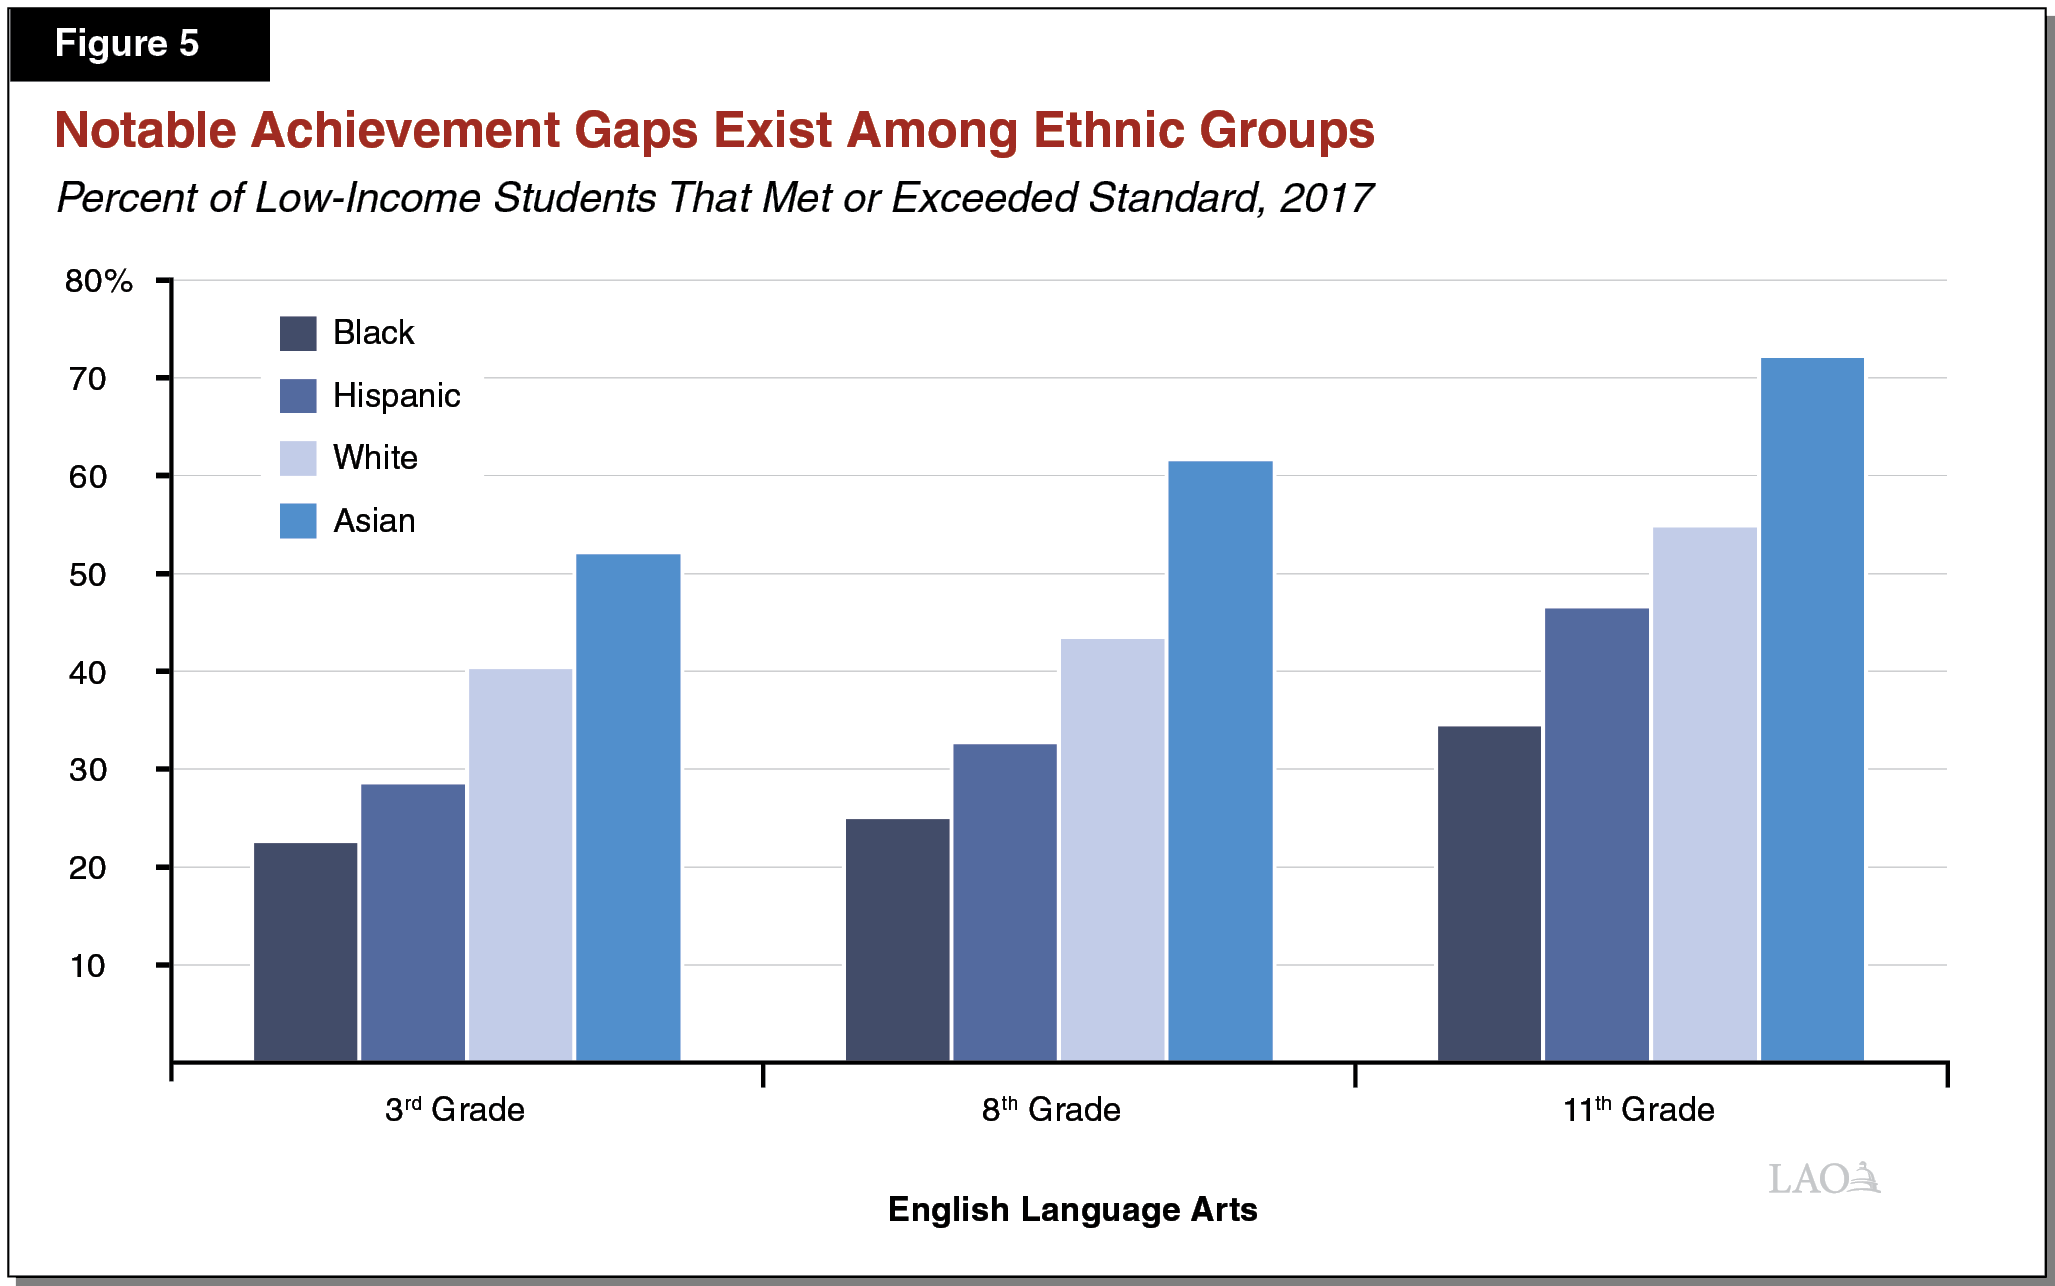 Figure 5 - Notable Achievement Gaps Exist Among Ethnic Groups